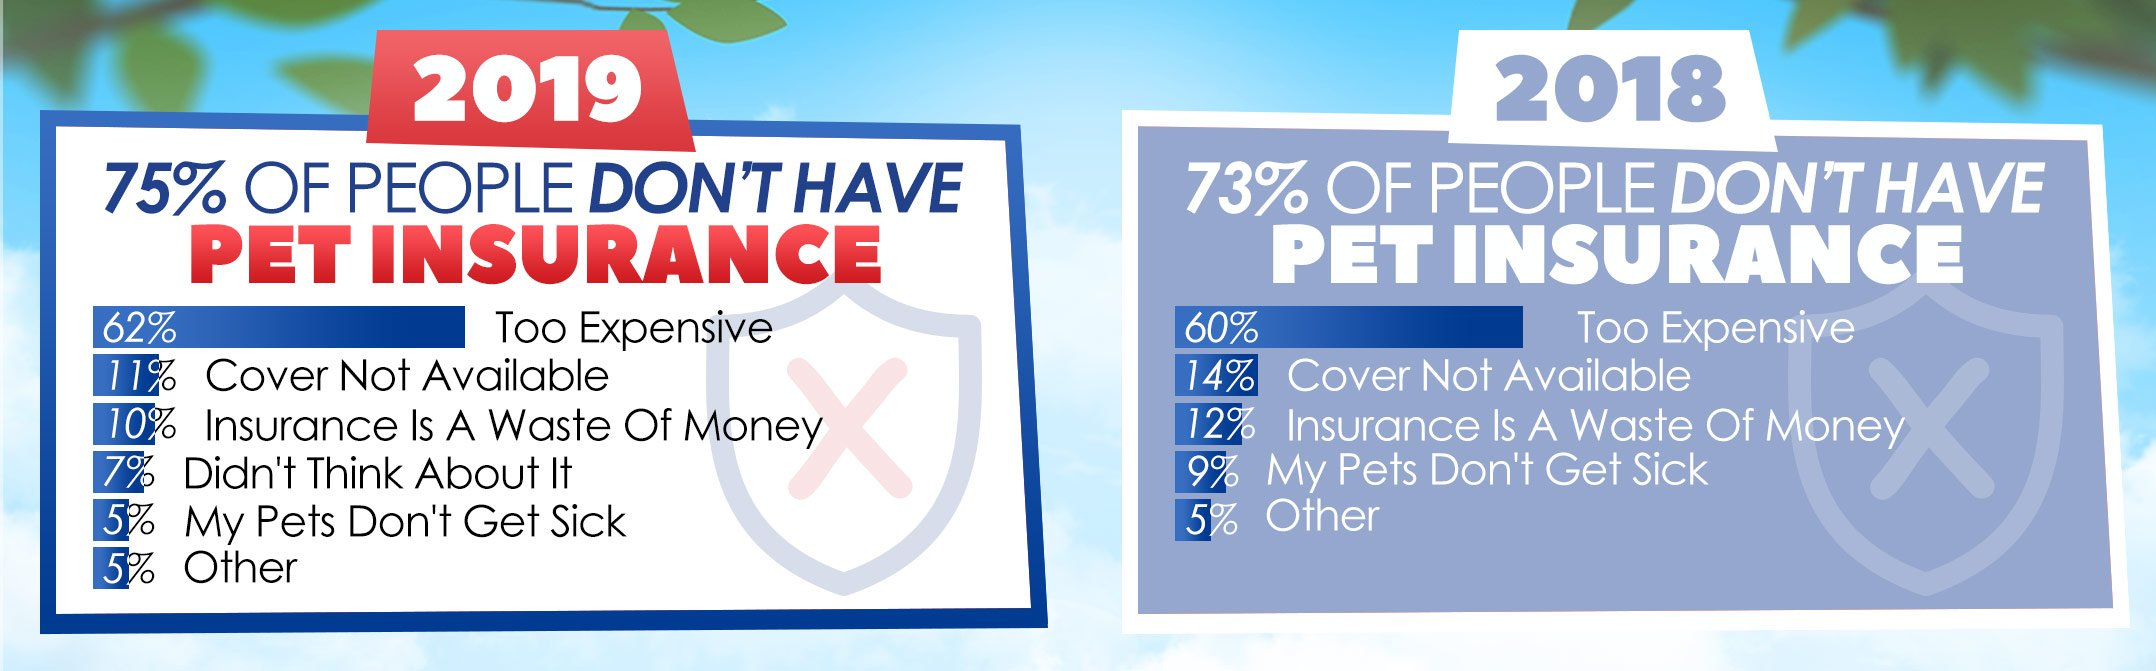 Pet Insurance Survey